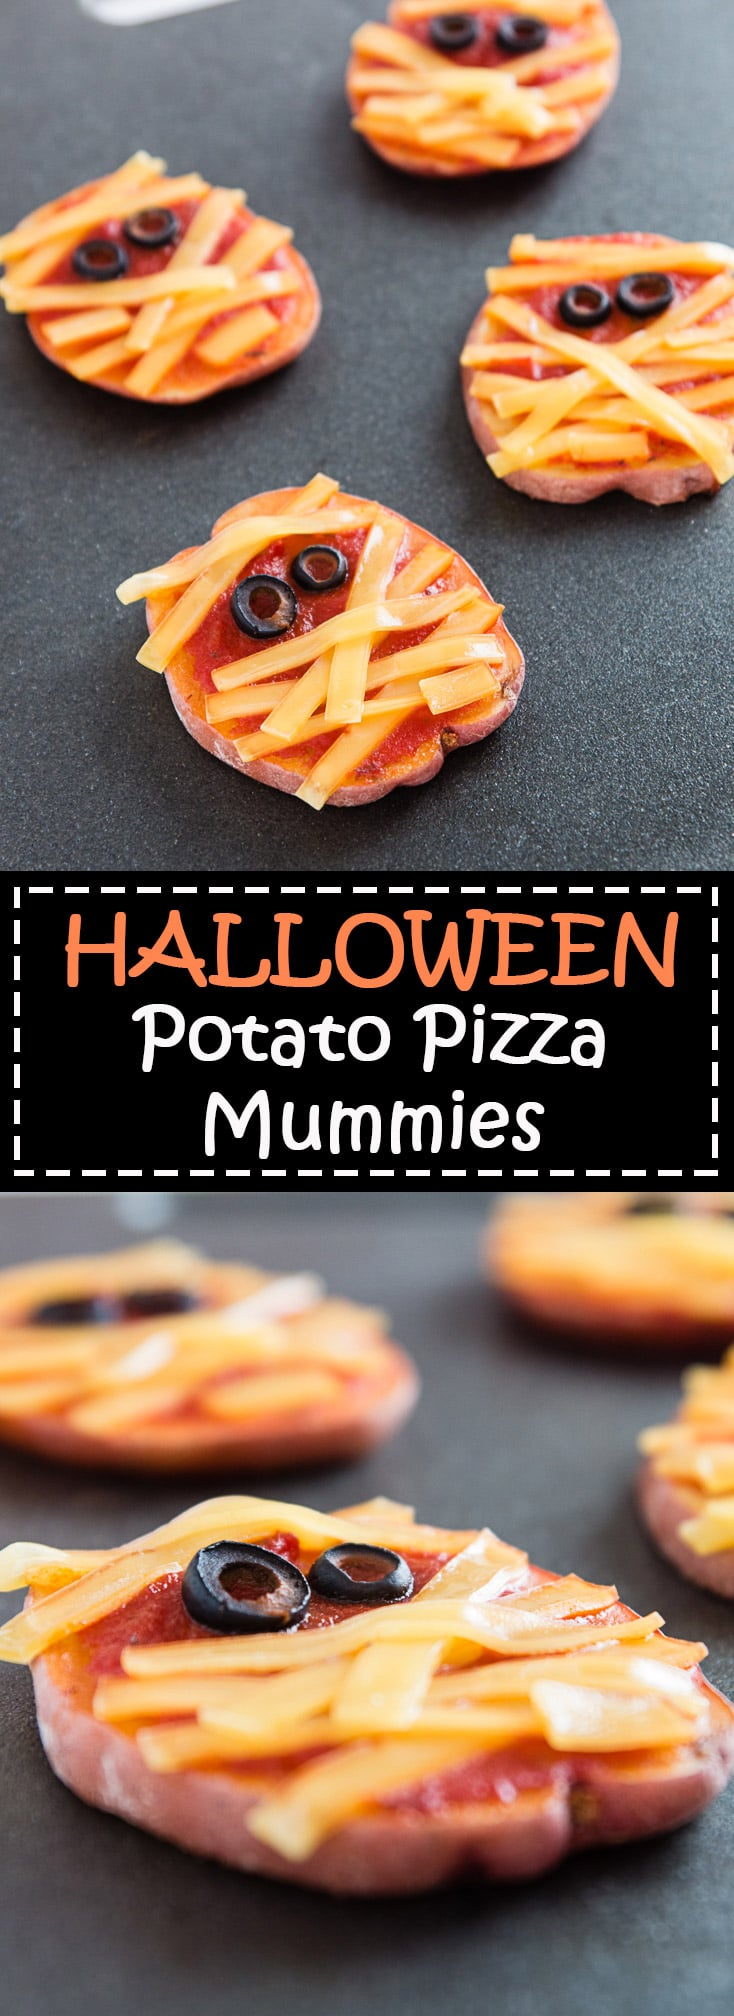 These Halloween Potato Pizza Mummies are perfect for a quick, easy, and fun dinner idea! #vegan #glutenfree | vegetariangastronomy.com